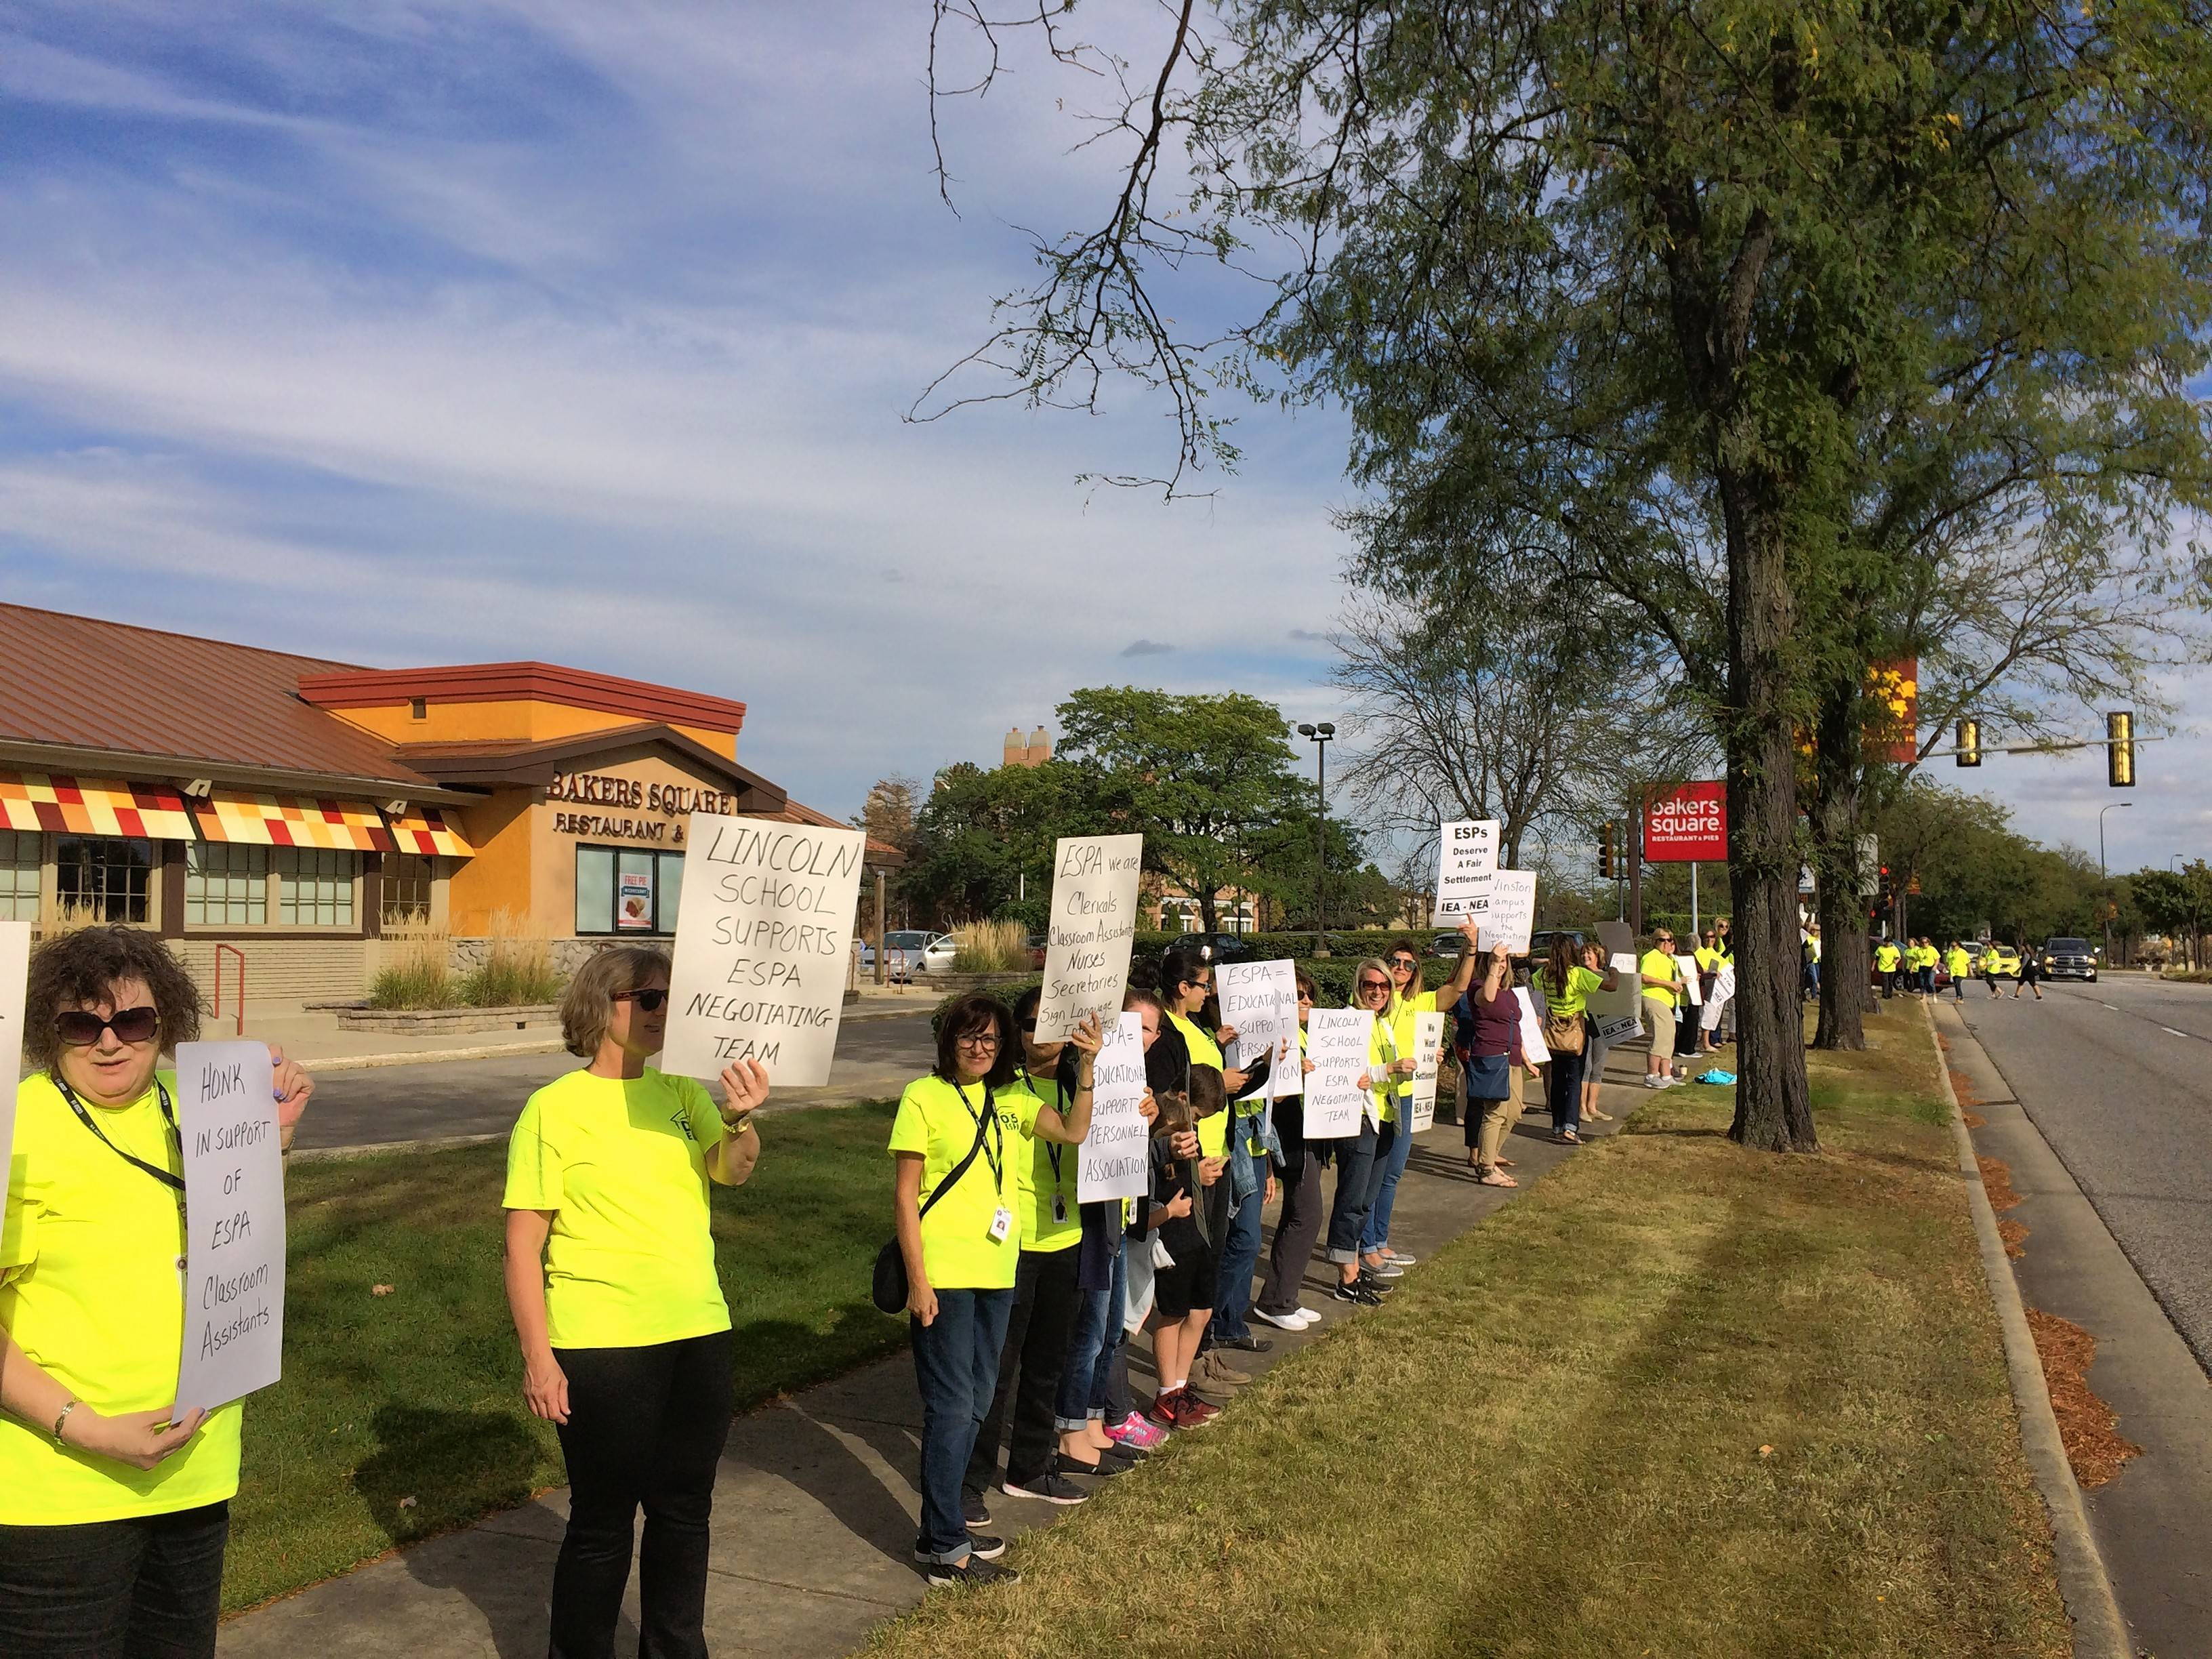 Palatine Township Elementary District 15 secretaries, nurses and other support employees showed their displeasure over stalled contract negotiations in a Wednesday afternoon rush-hour picket off Northwest Highway in the village.